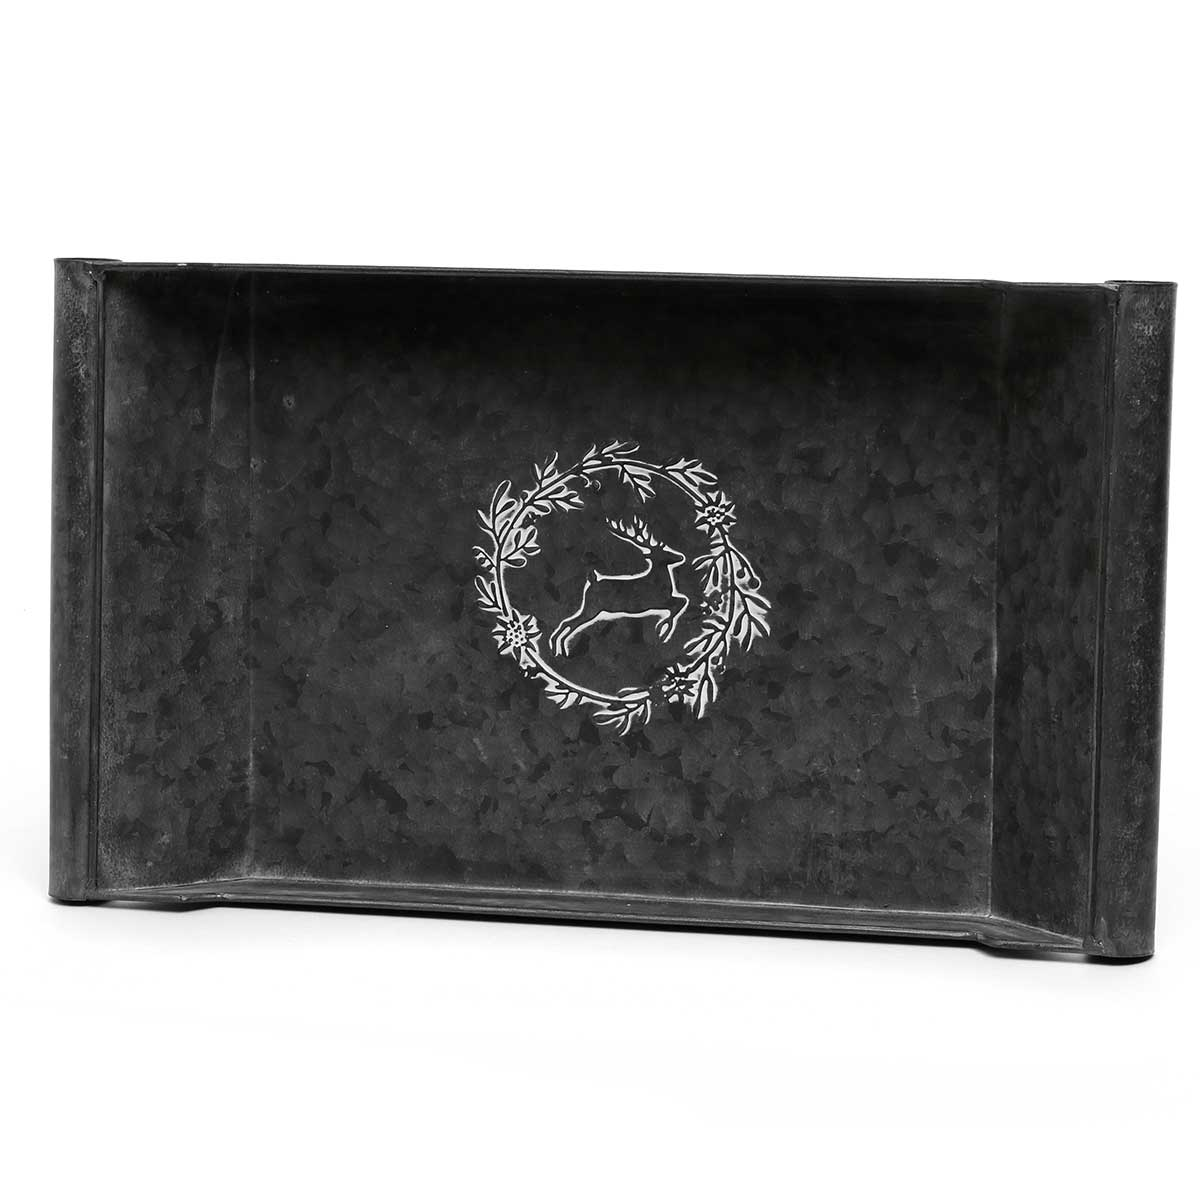 METAL TRAY WITH WHITE EMBOSSED